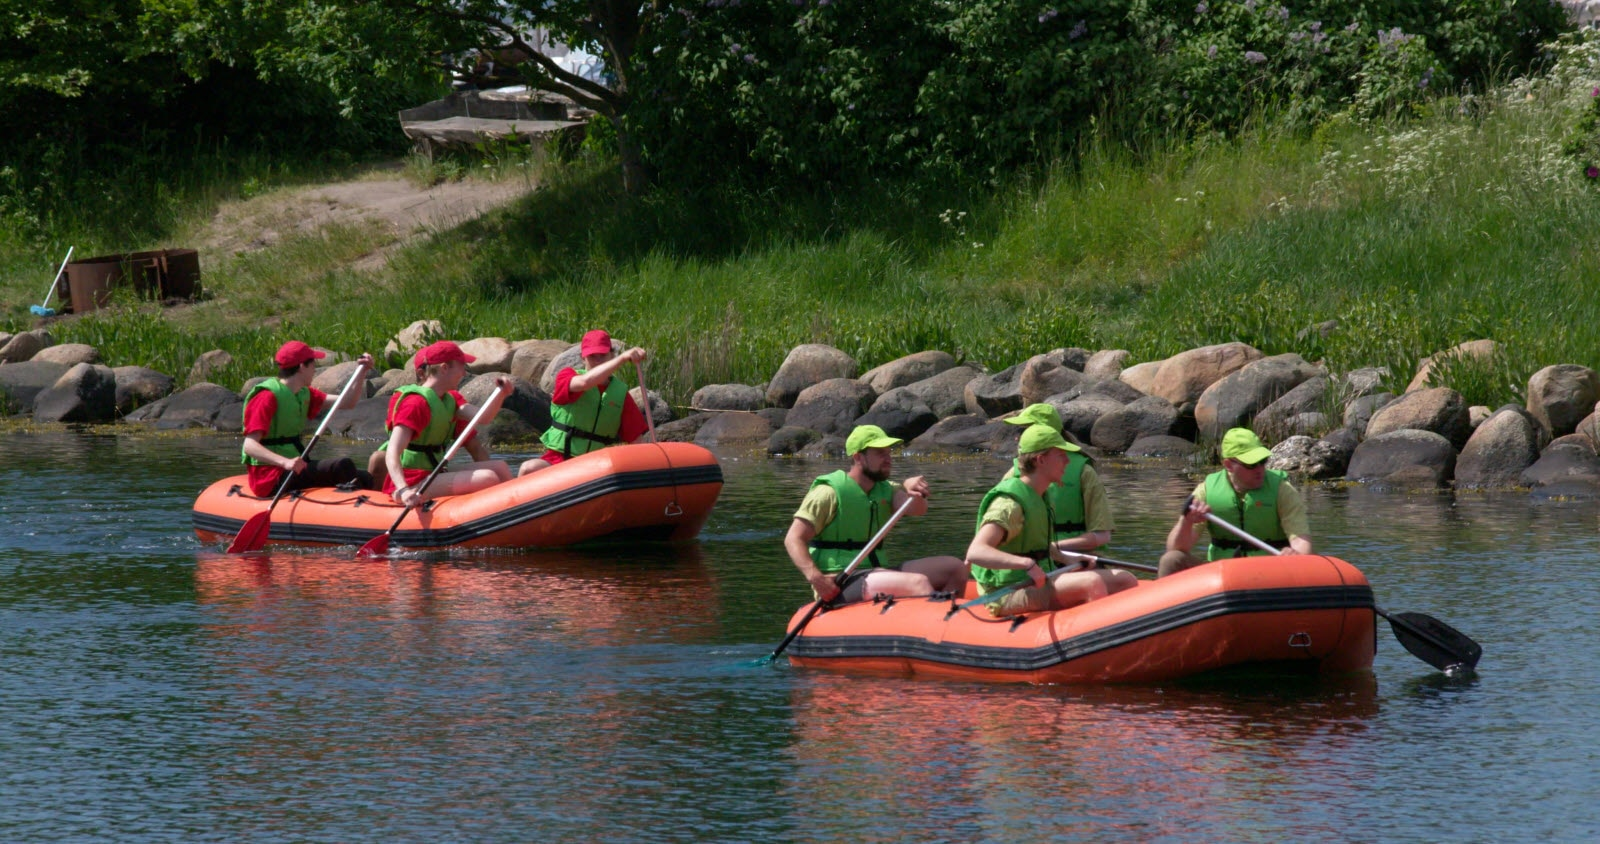 Teambuilding at Scandic Sluseholmen